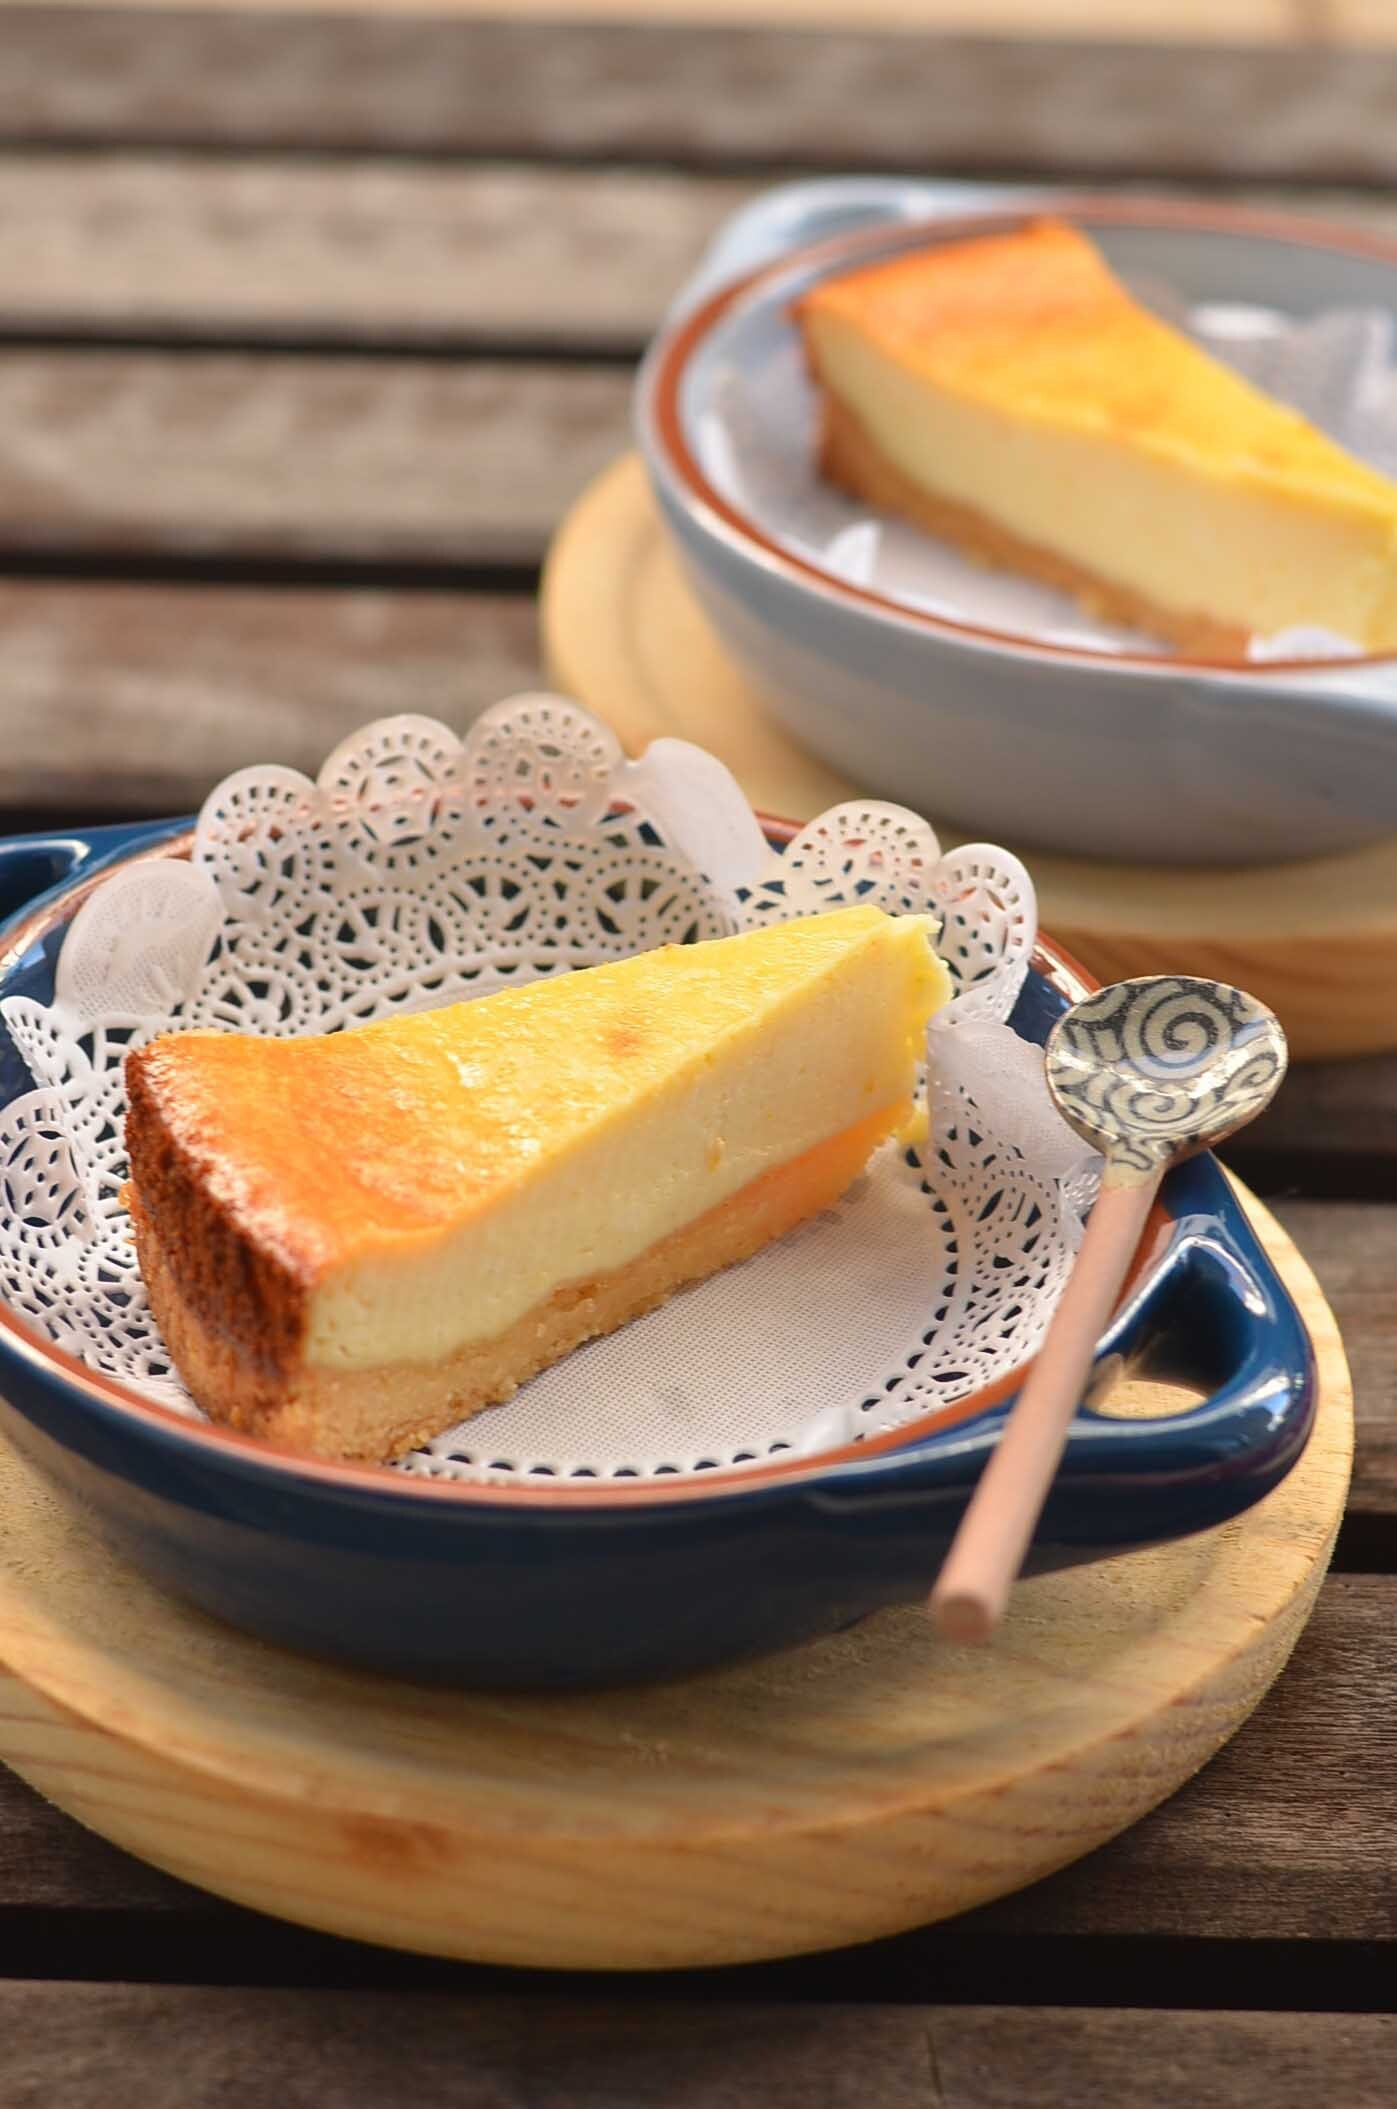 Baked yuzu yogurt cheesecake